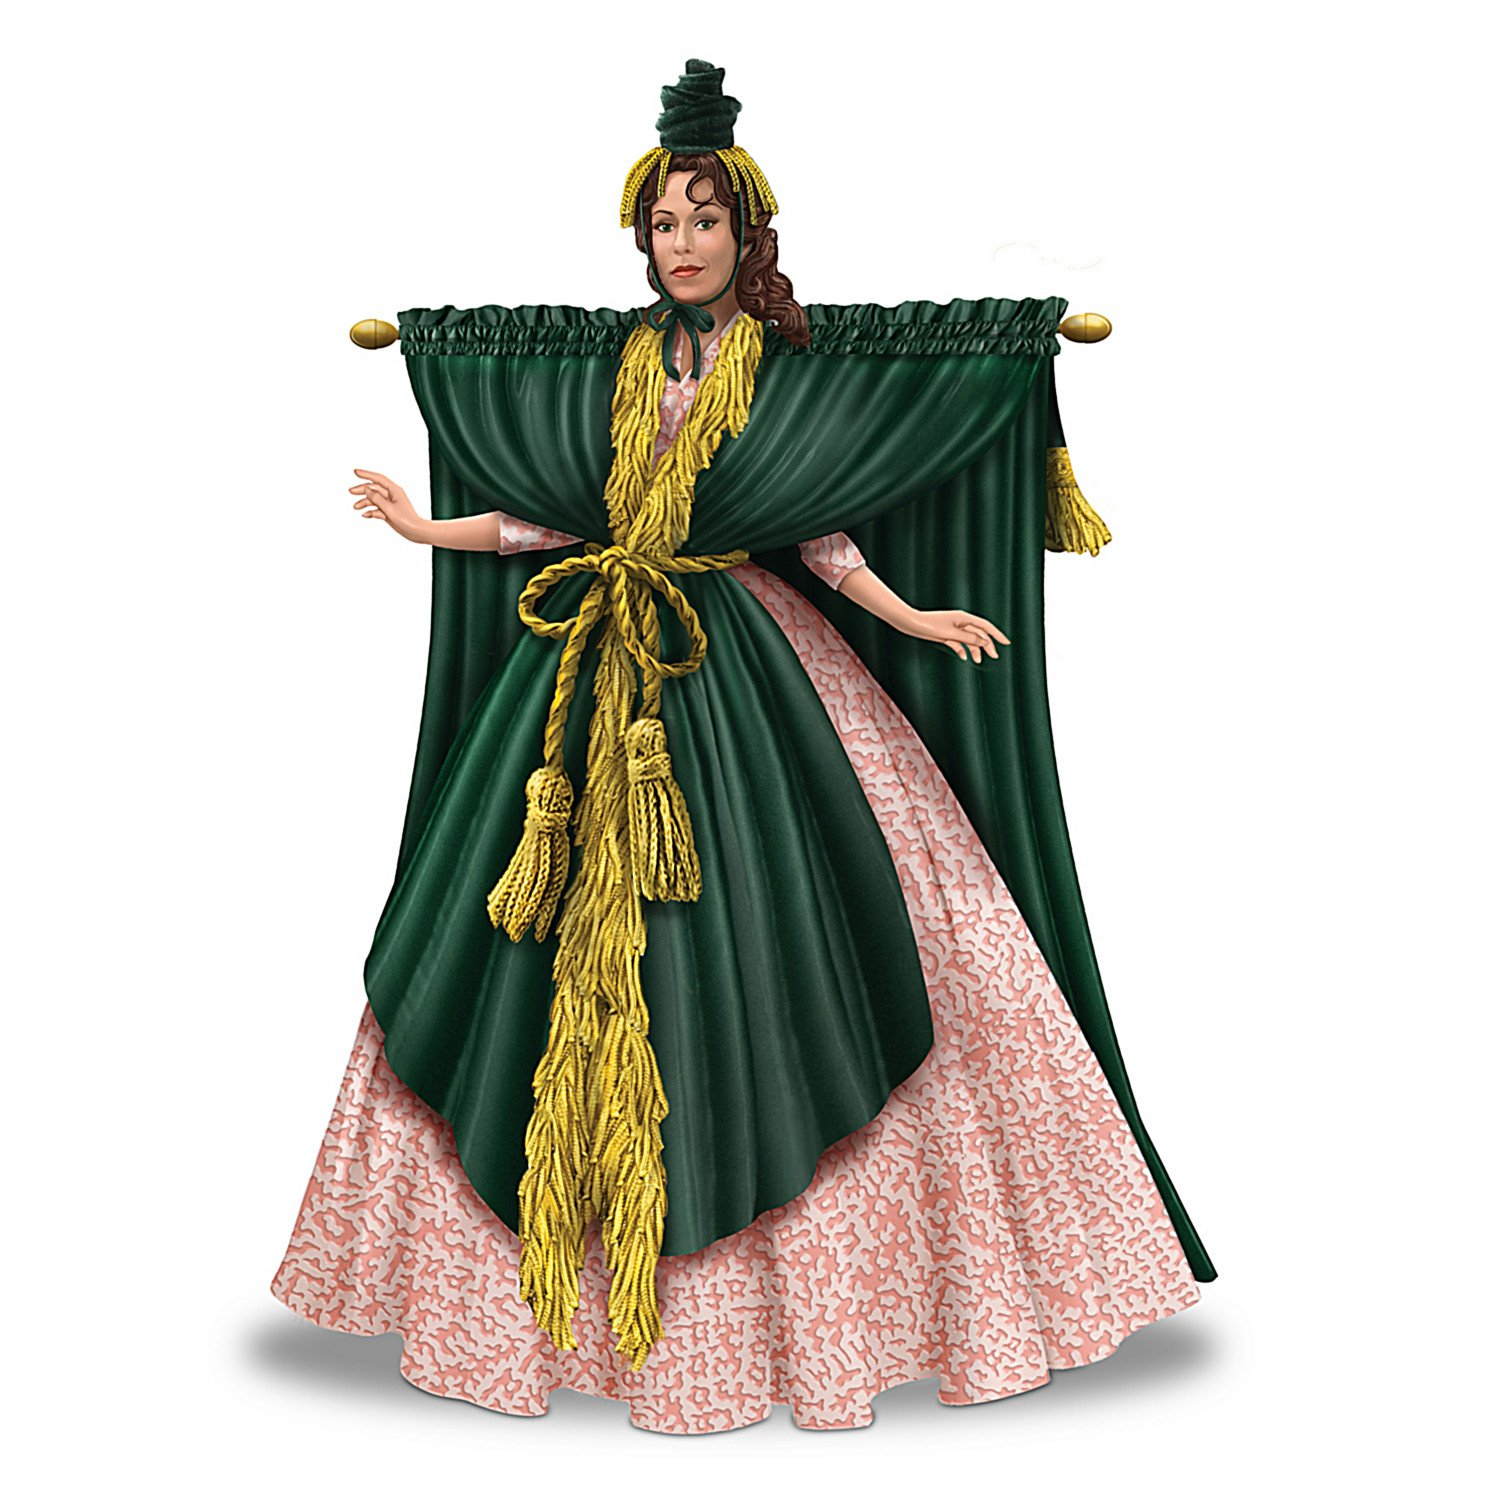 Carol Burnett Curtain Dress Costume